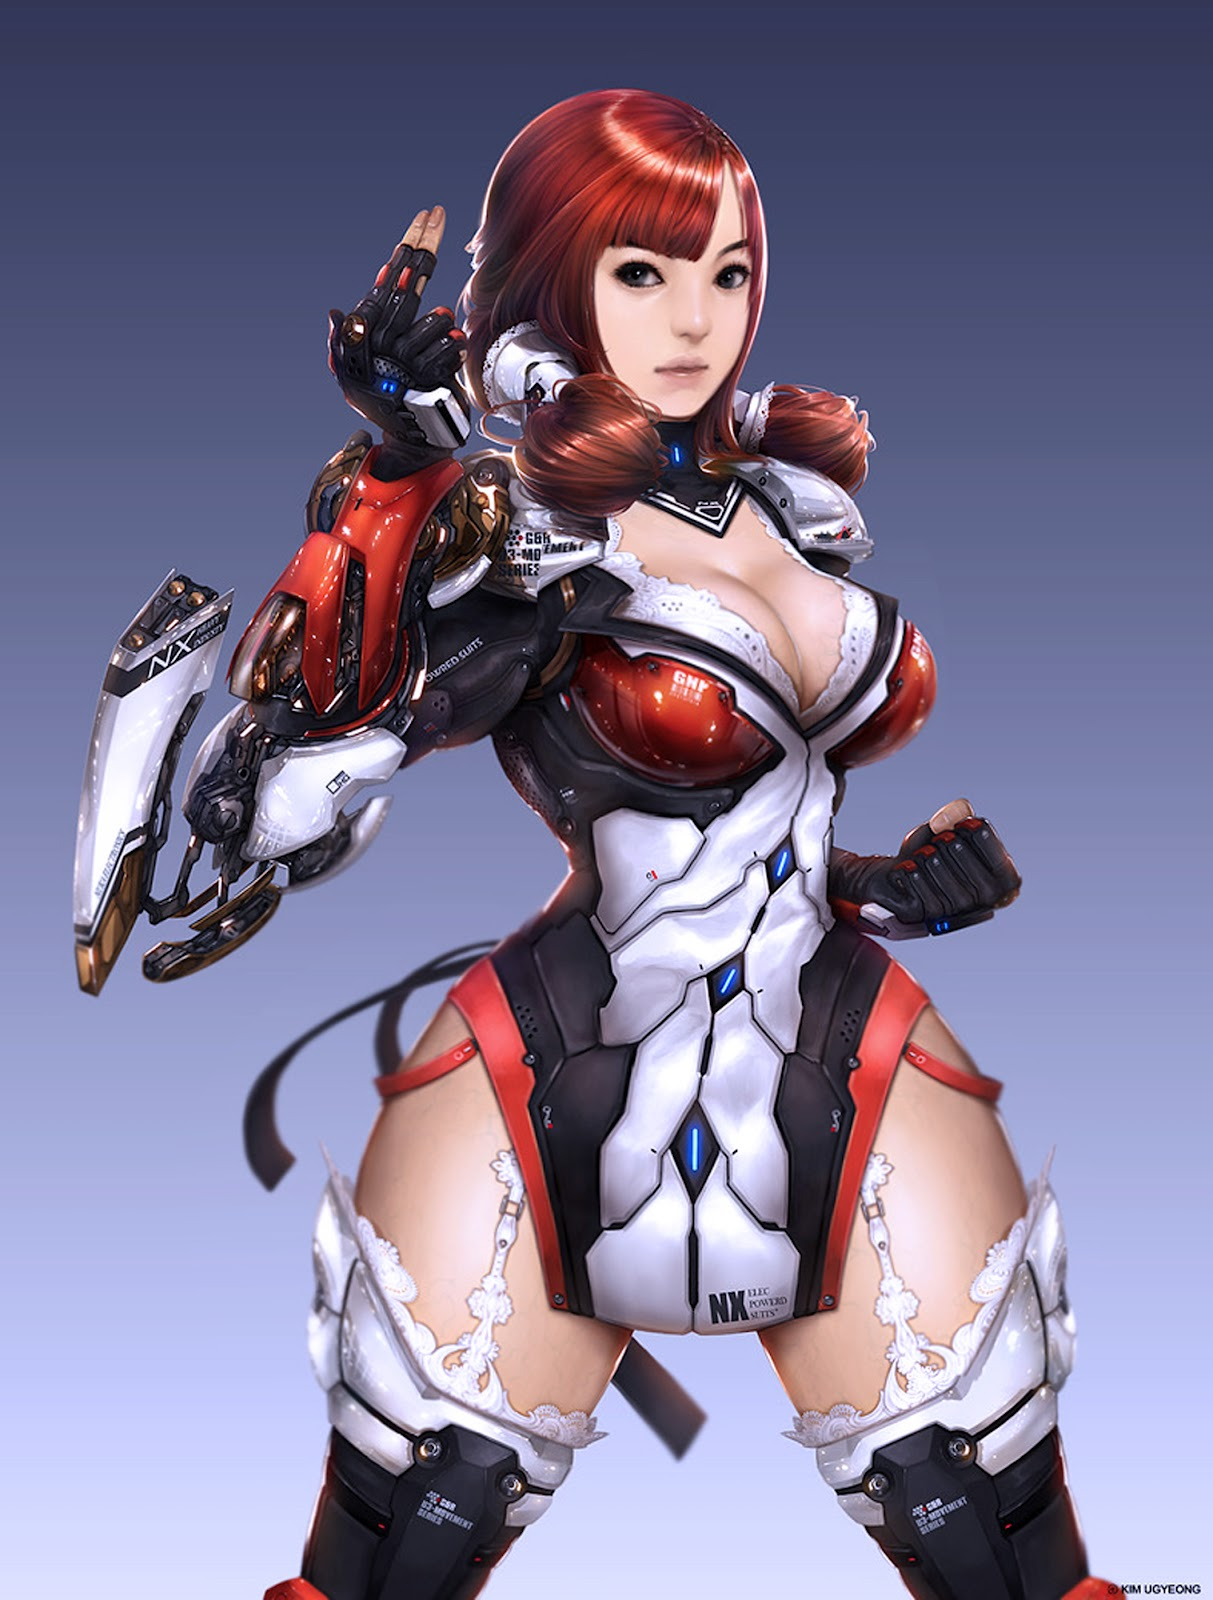 female space suit anime cosplay - photo #32